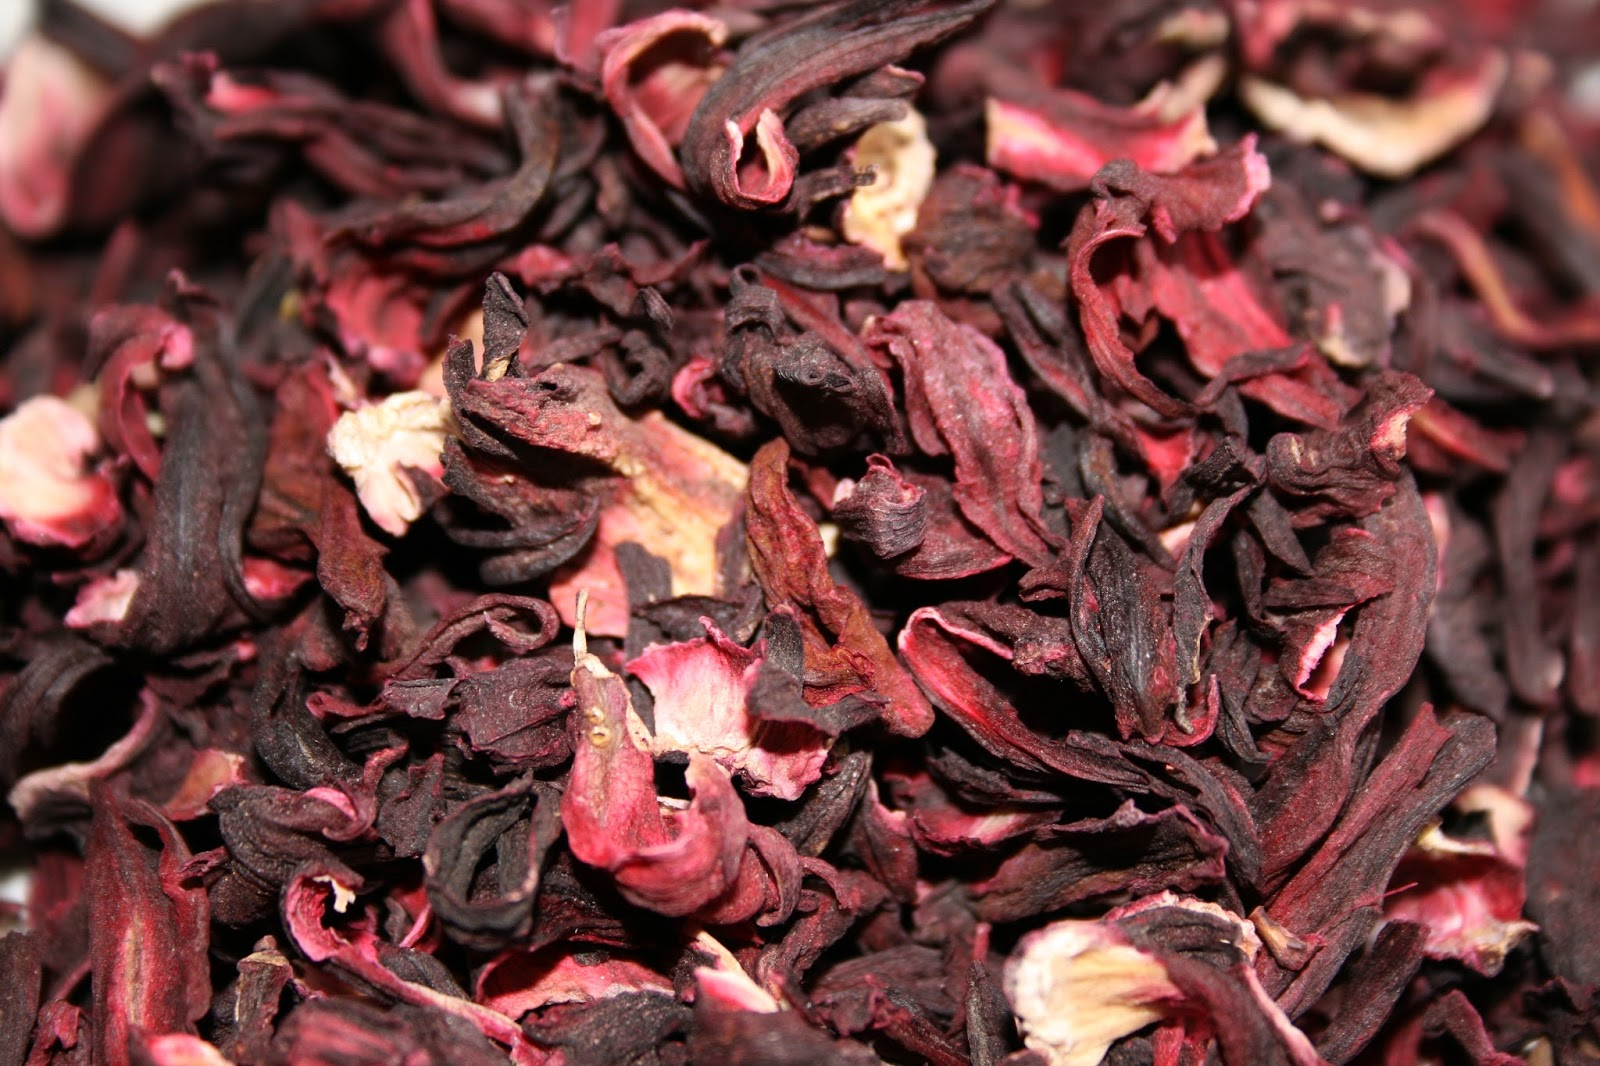 How to export dried hibiscus flower zobo leaves from nigeria how to export dried hibiscus flower zobo leaves from nigeria izmirmasajfo Choice Image